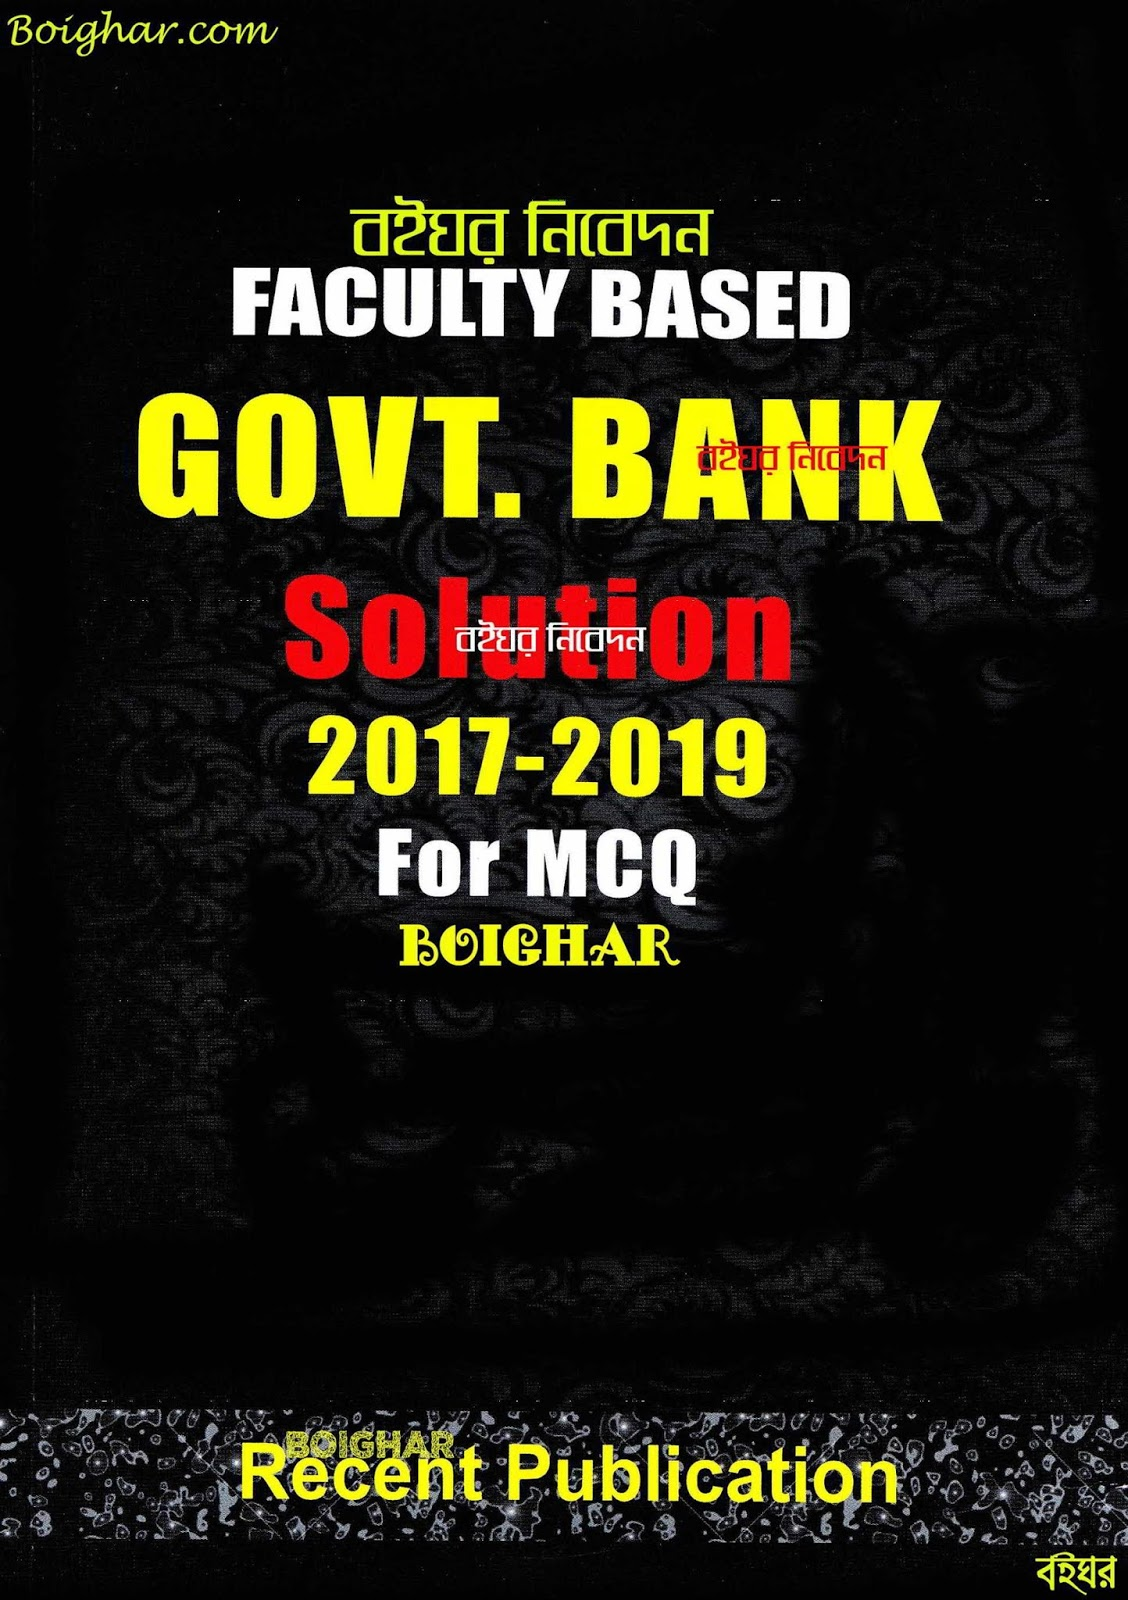 Faculty Based Govt Bank Solution 2017-2019 Ppf MCQ | ব্যাংক সলিউশন ২০১৭-২০১৯ |Govt Bank Solution 2017-2019